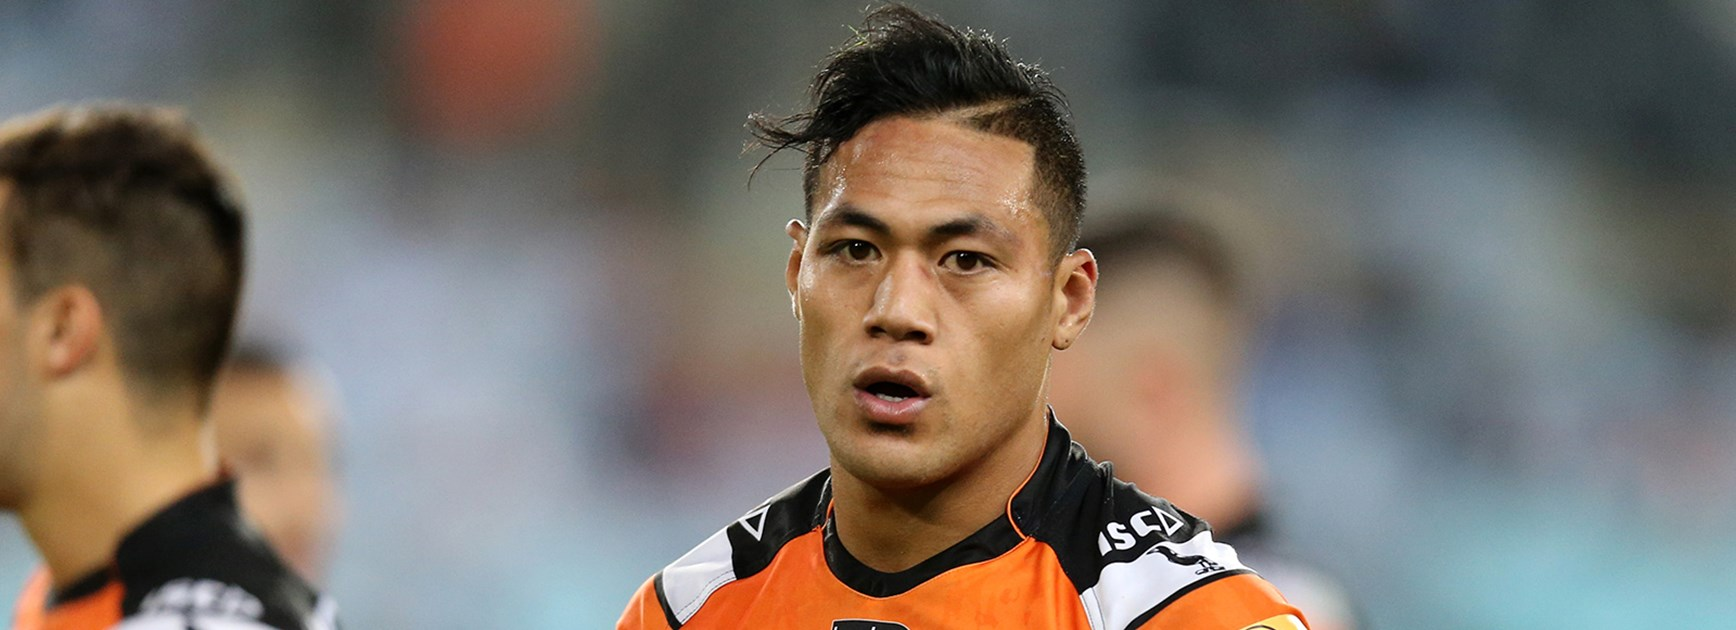 Wests Tigers centre Tim Simona is looking forward to facing the Roosters in Round 20.